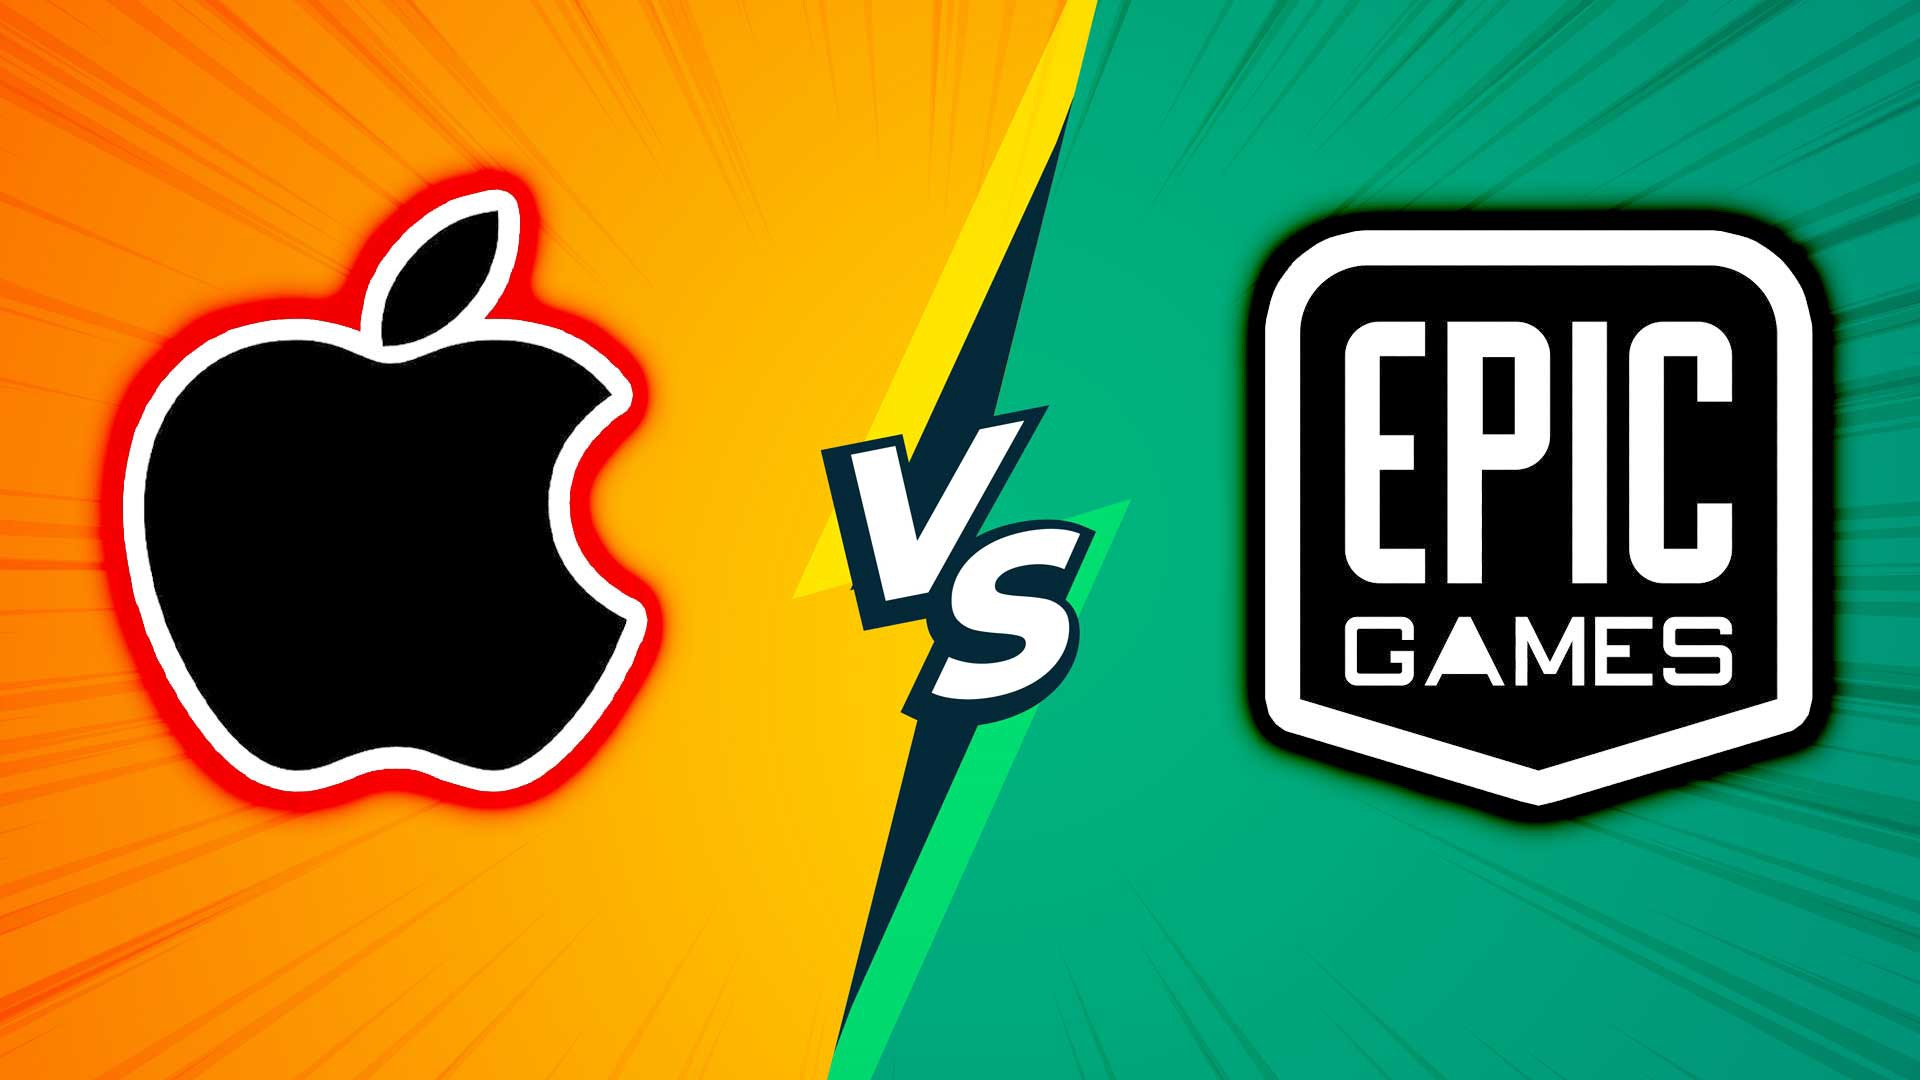 Fortnite Vs Apple Google The Real Battle Is Now In Court By Yehia El Taher Y Technology Medium Fortnite's makers took issue with the app store over its cut, so apple kicked them out. fortnite vs apple google the real